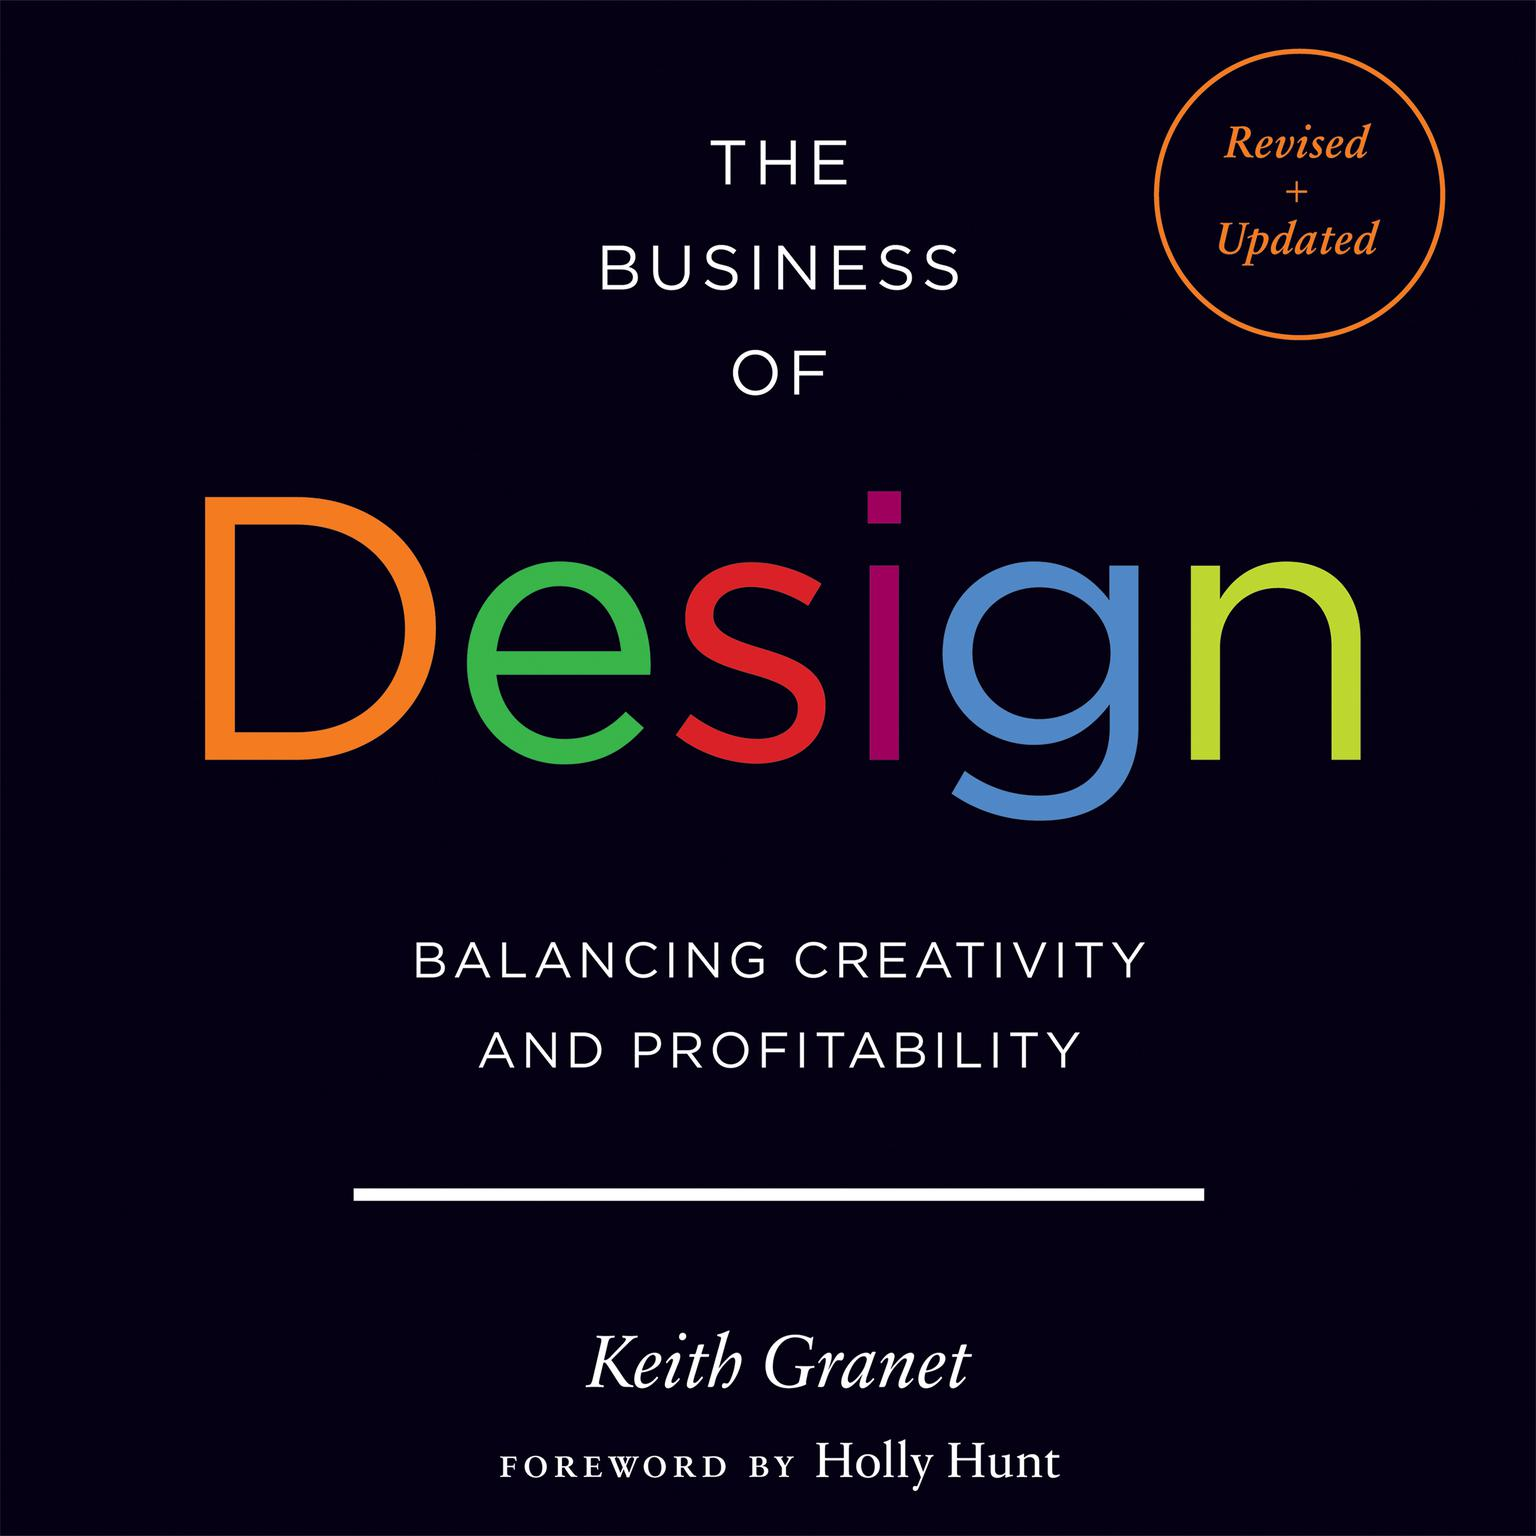 The Business of Design: Balancing Creativity and Profitability Audiobook, by Keith Granet